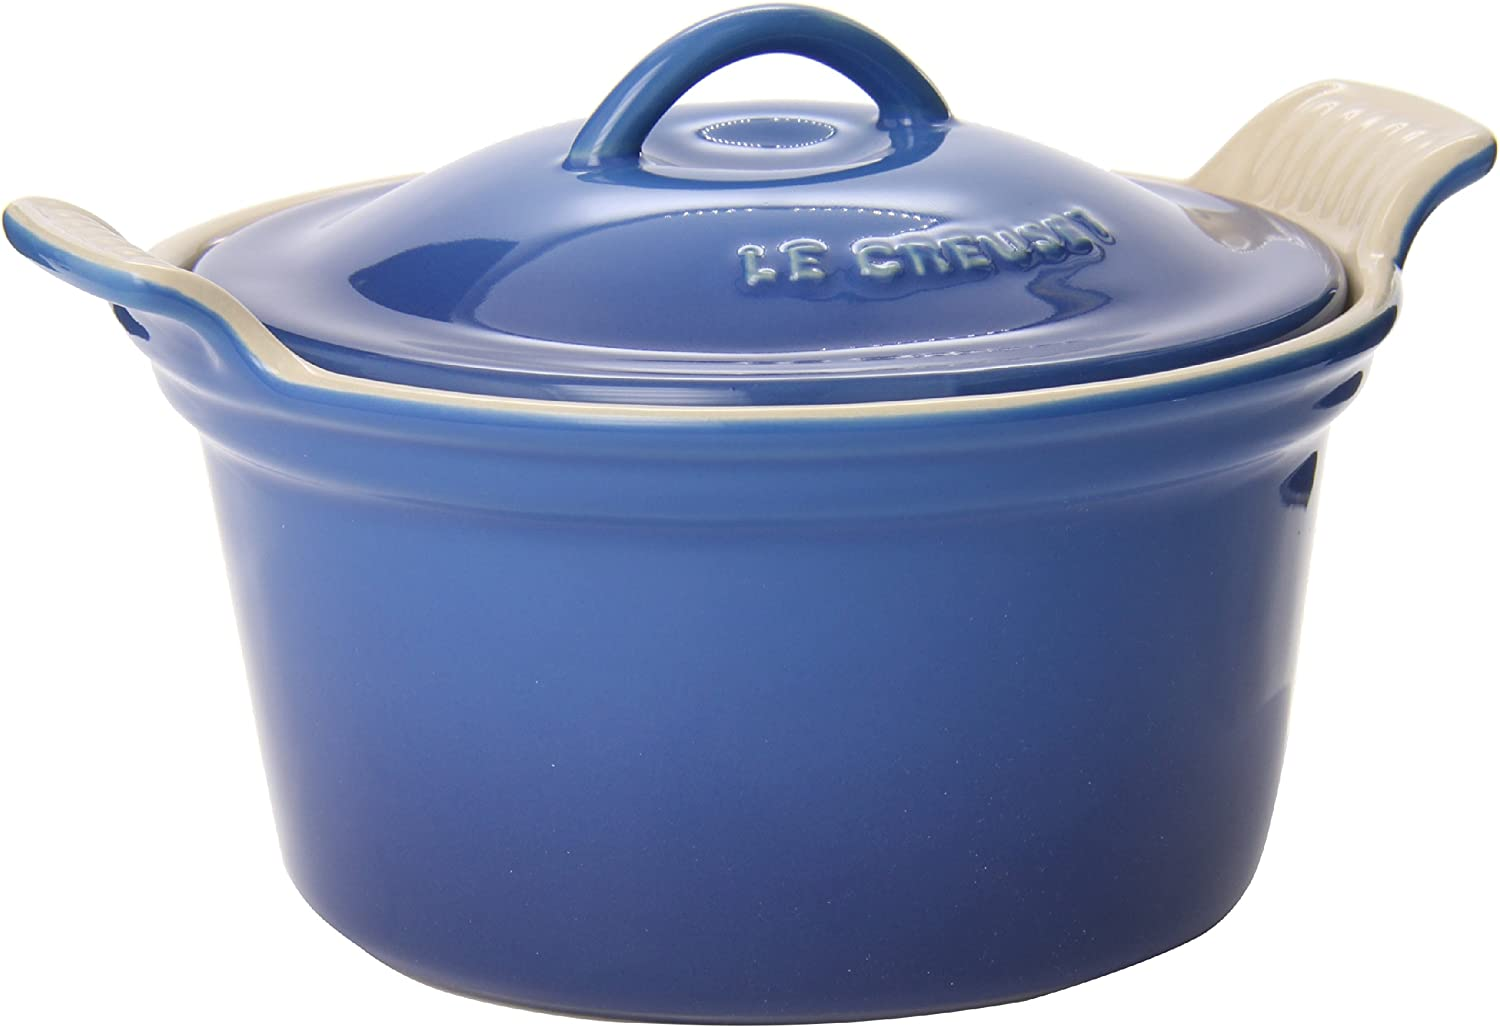 Le Creuset PG1560-1359 Heritage Stoneware Covered Cocotte, 18oz., Marseille